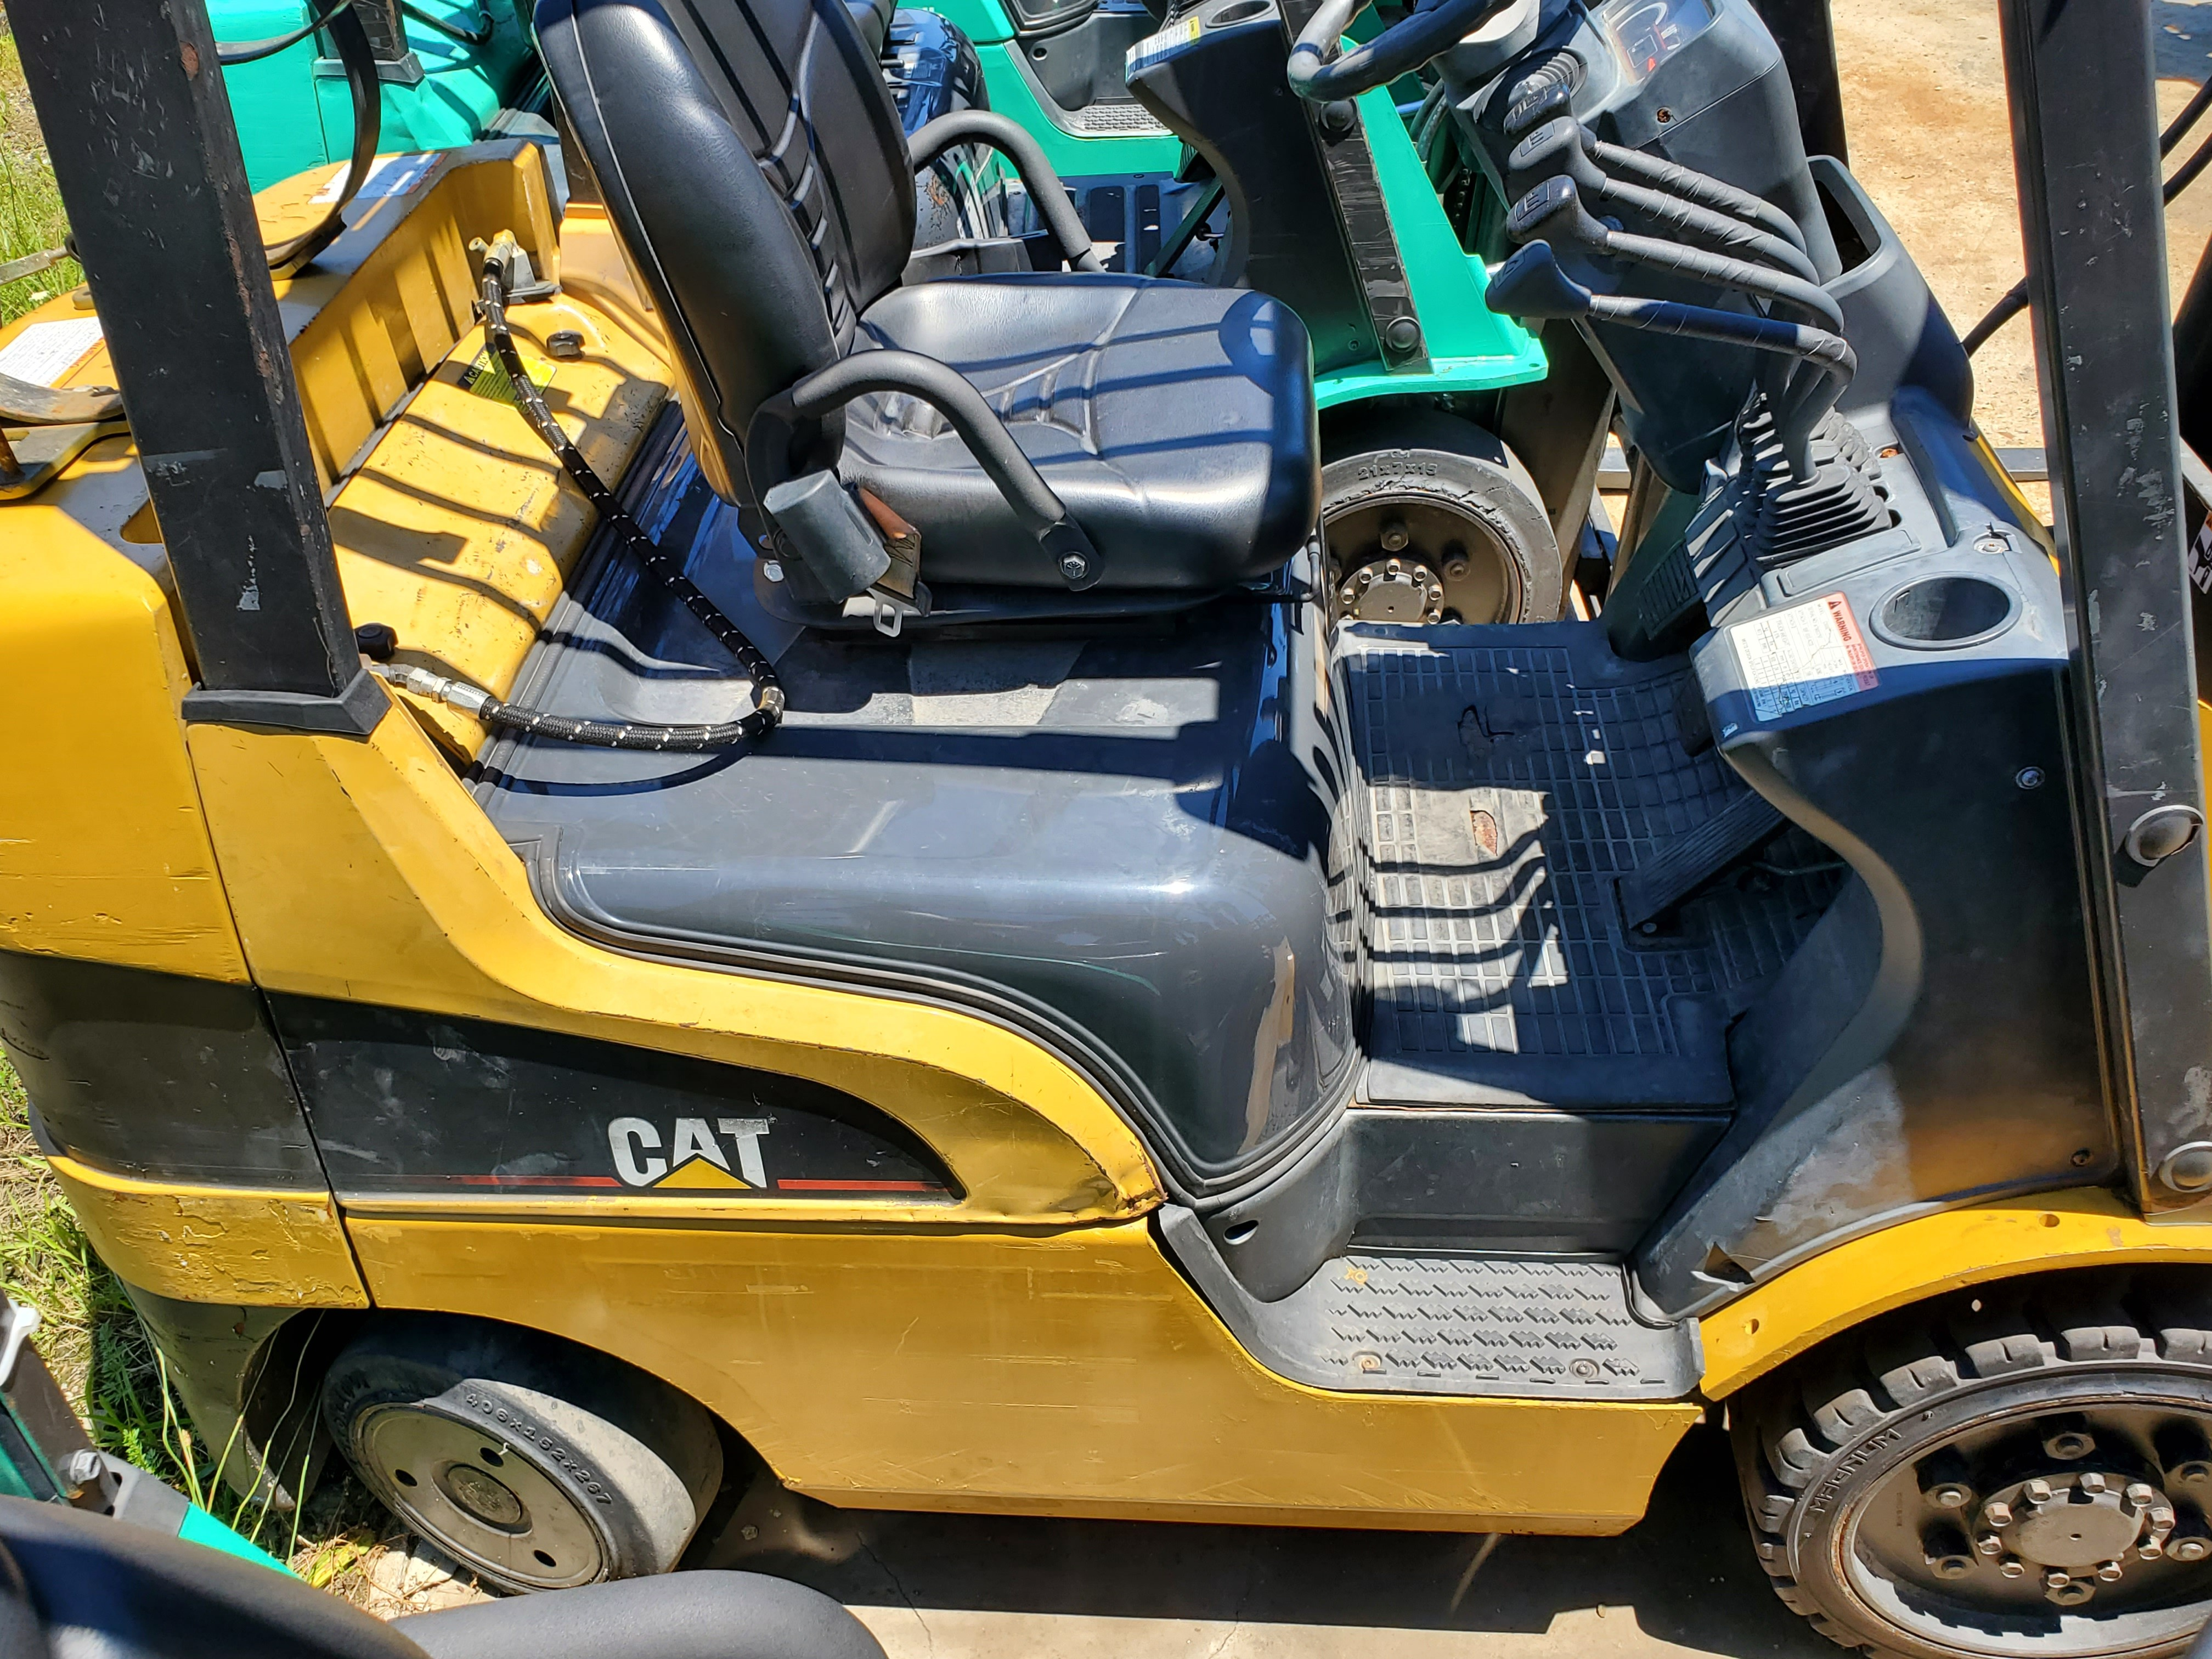 Used, 2006, CAT, c5000, Forklifts